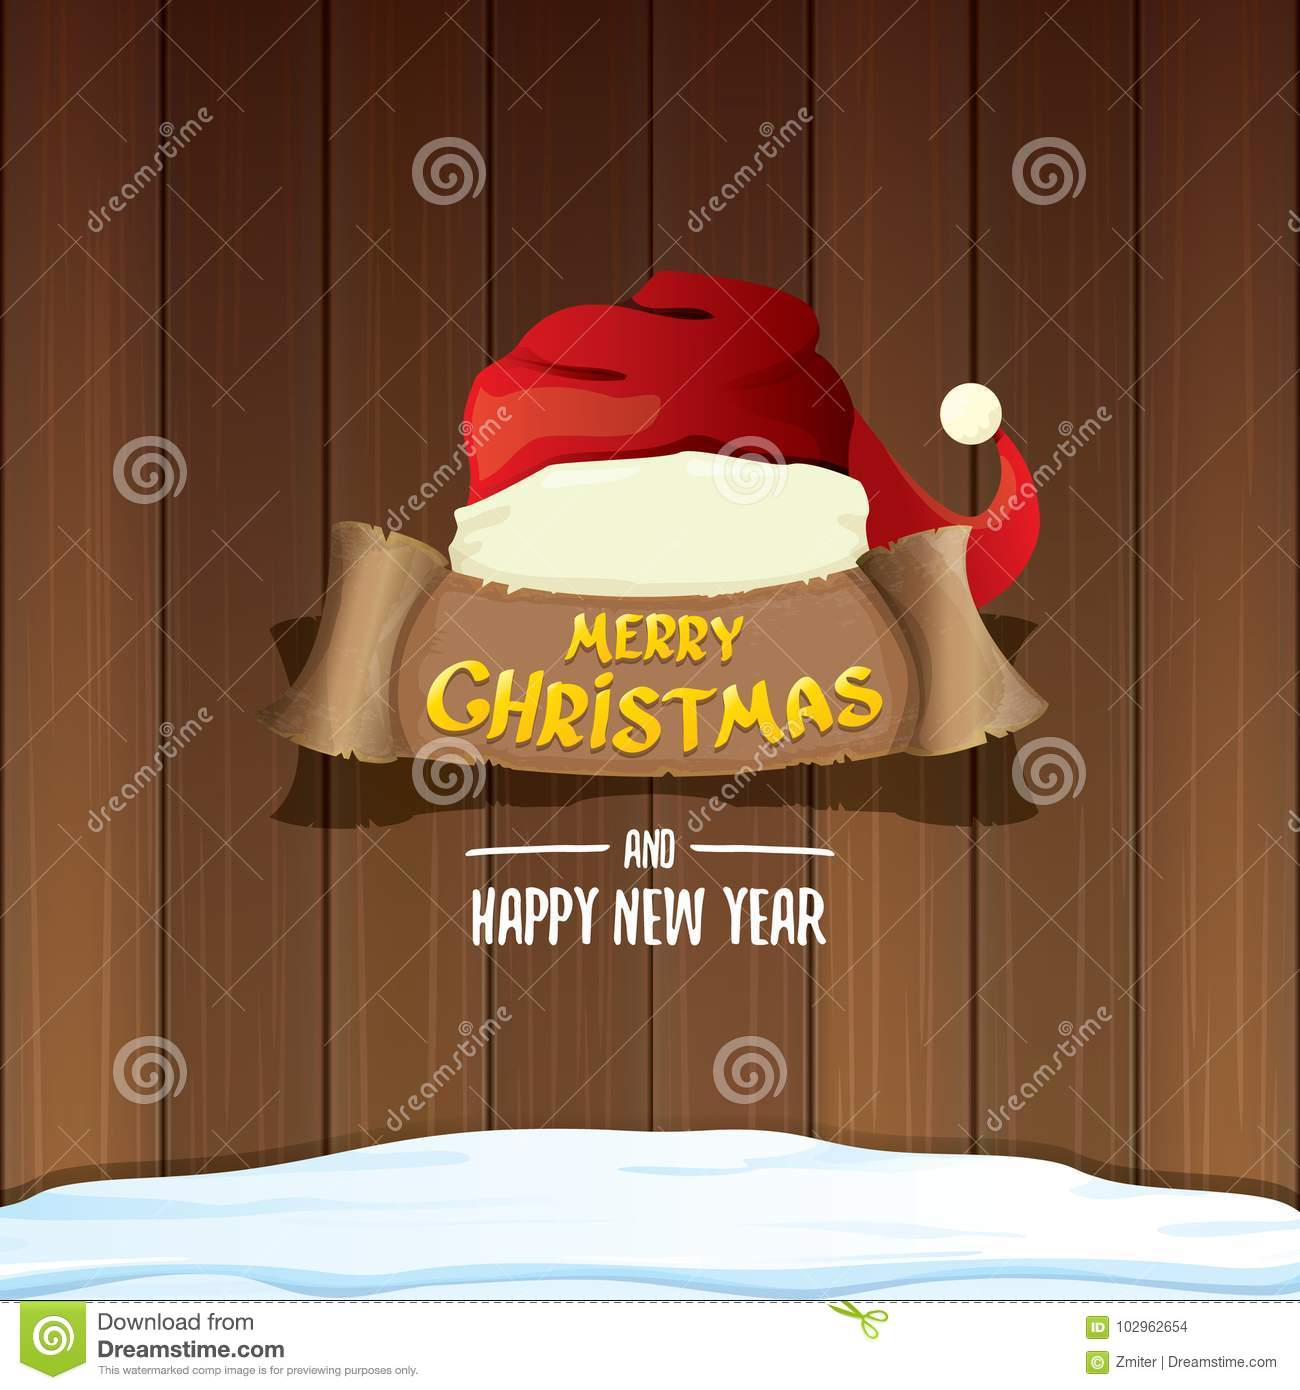 4c5220f01a3 Vector red Santa hat with paper banner and greeting text Merry Christmas  and Happy new year on wooden background. vector merry christmas card